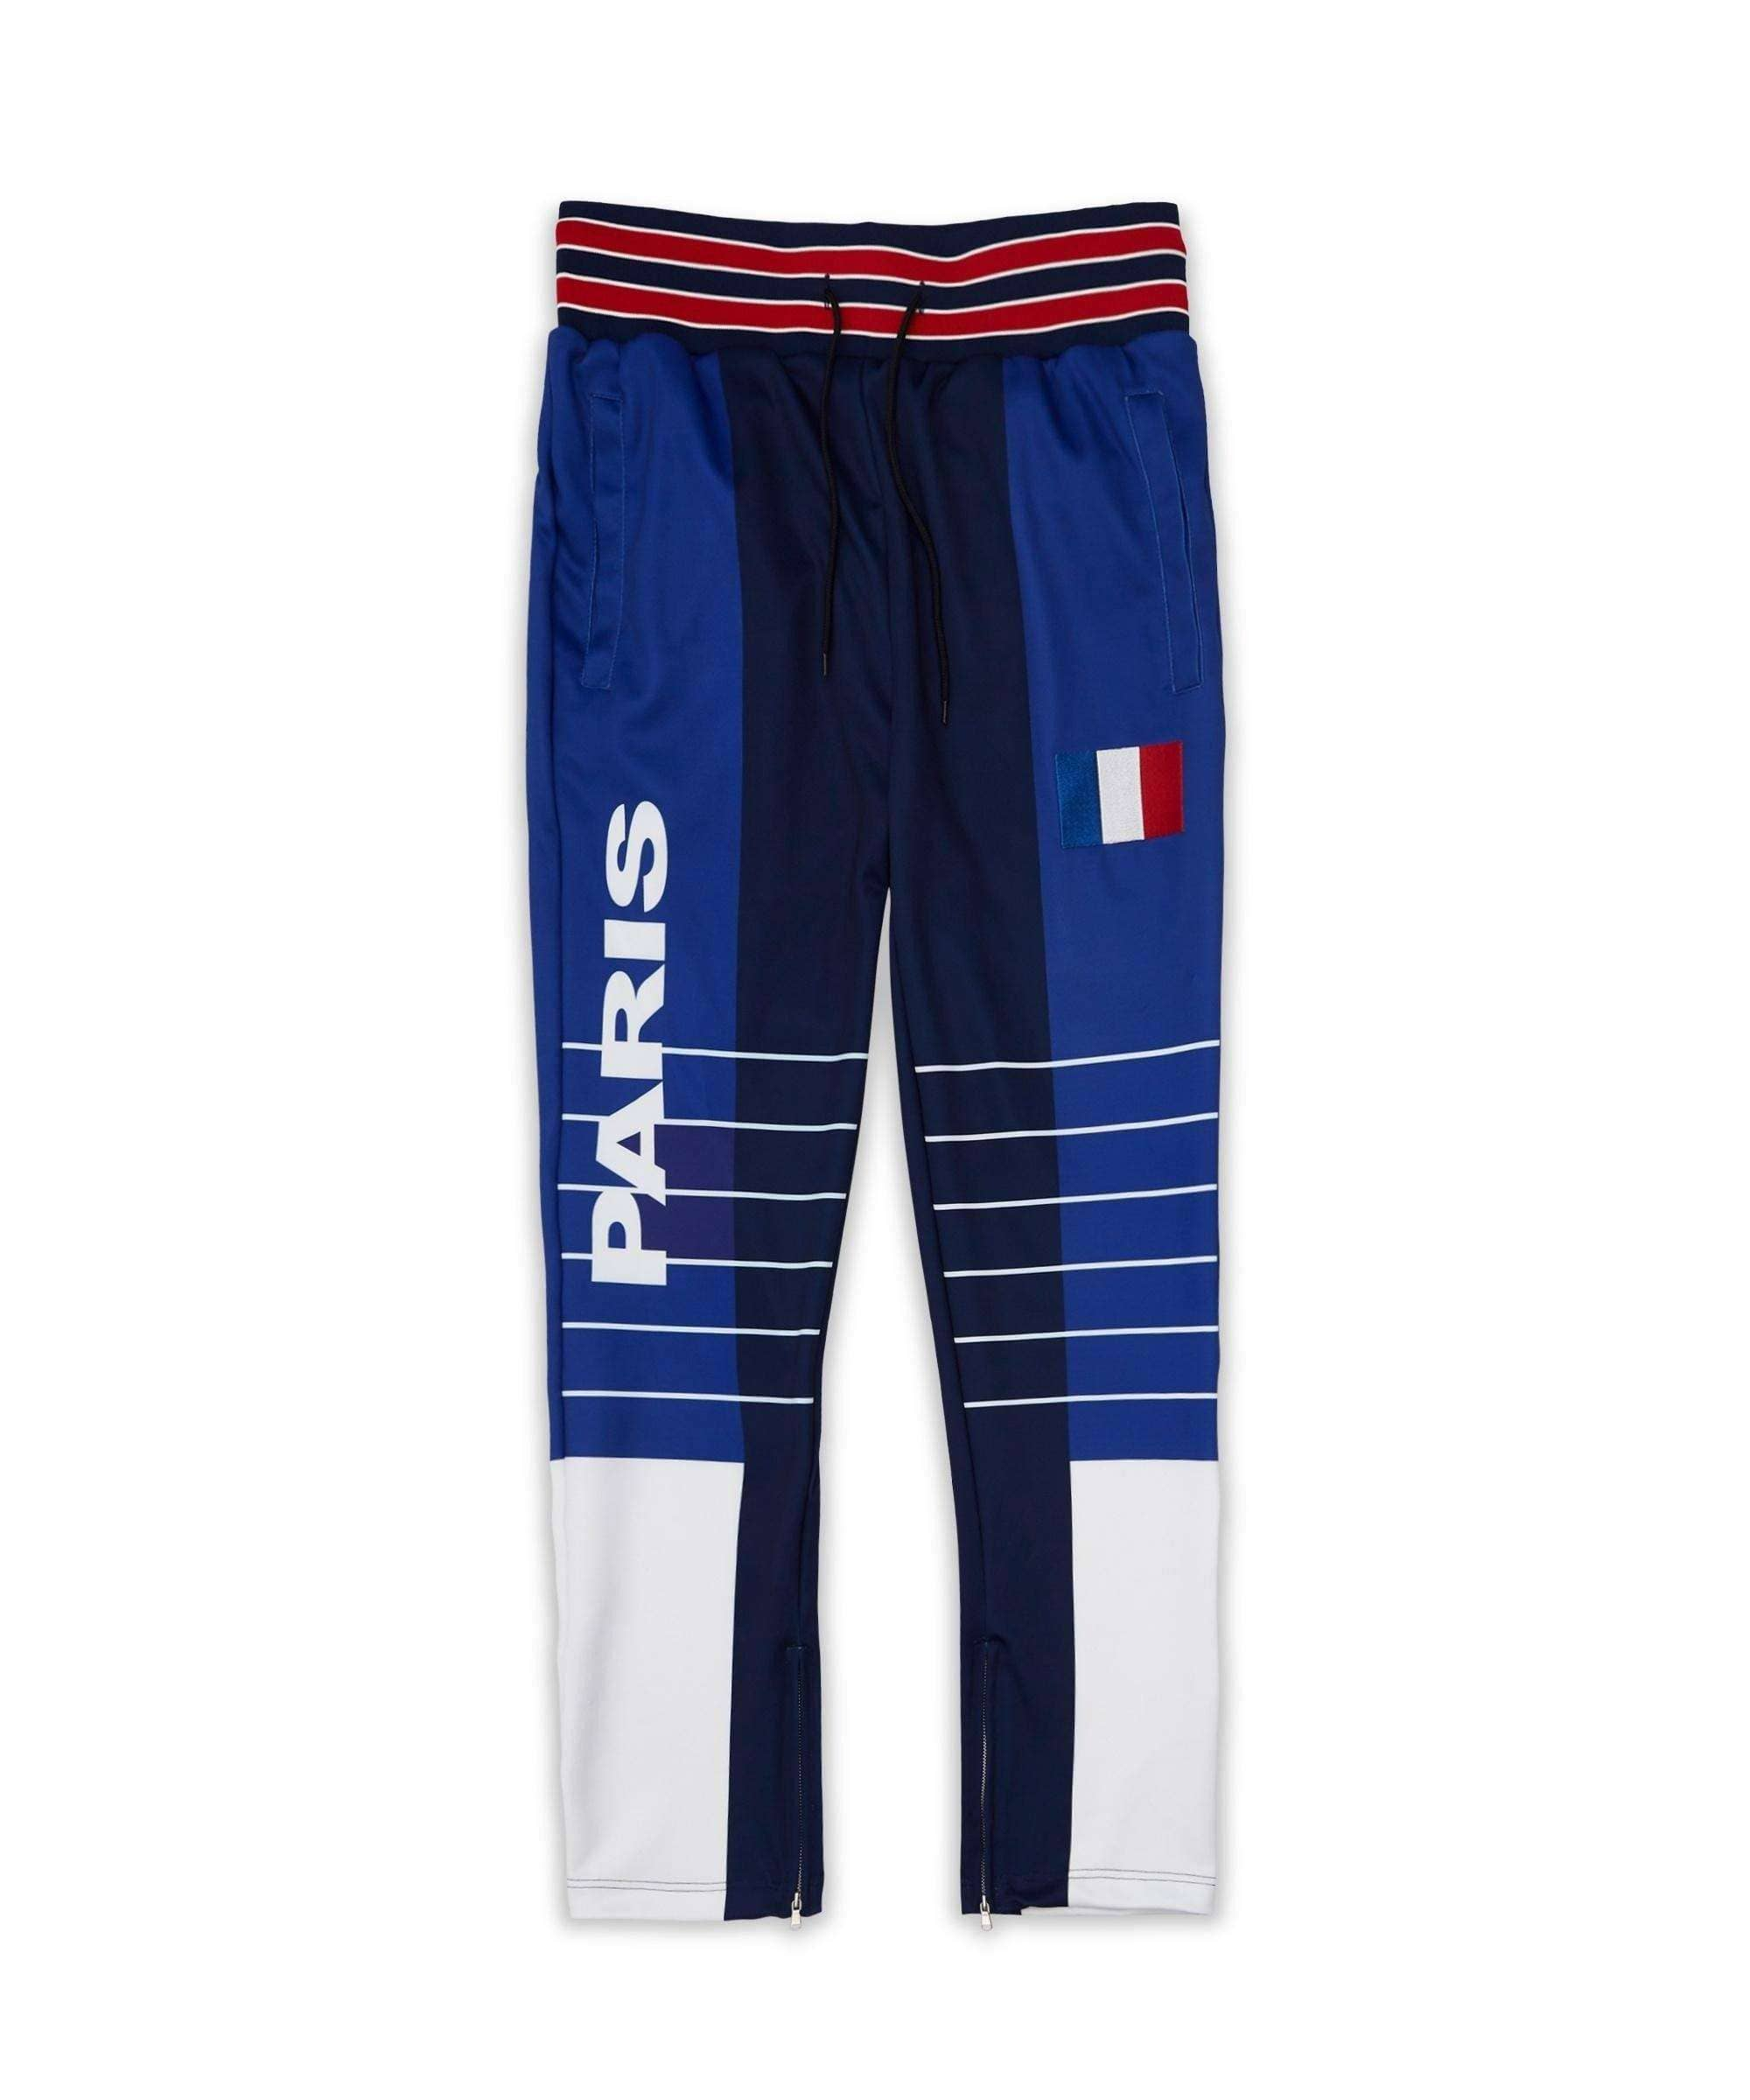 PARIS TRACK PANT Reason Clothing